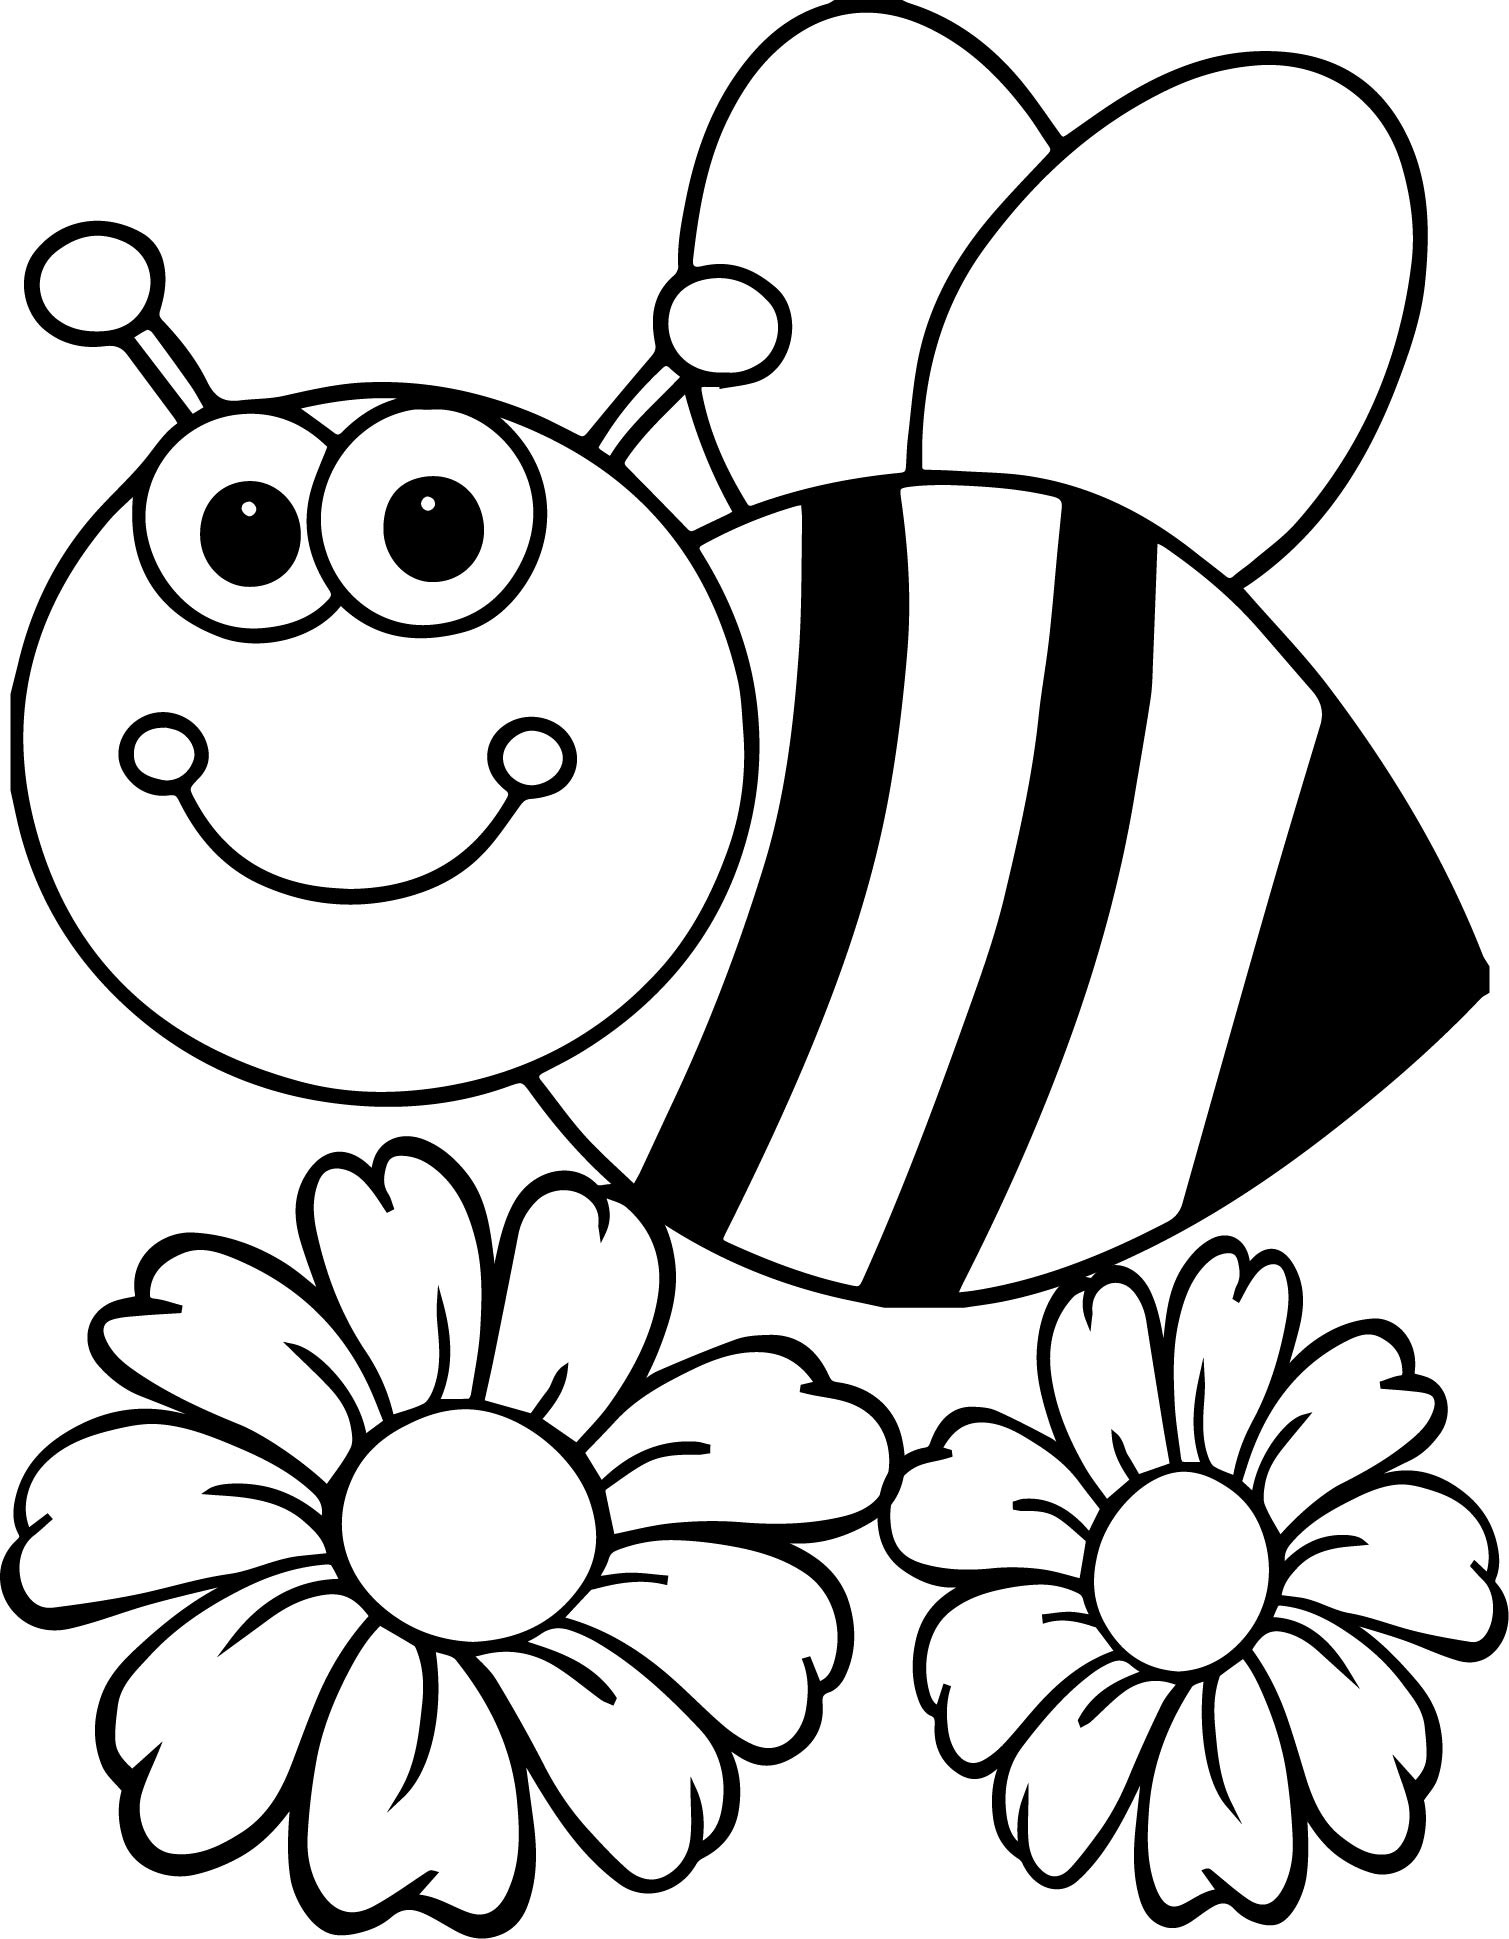 1509x1939 Maya The Bee On Flower Coloring Pages For Kids Best Of Bee Flower